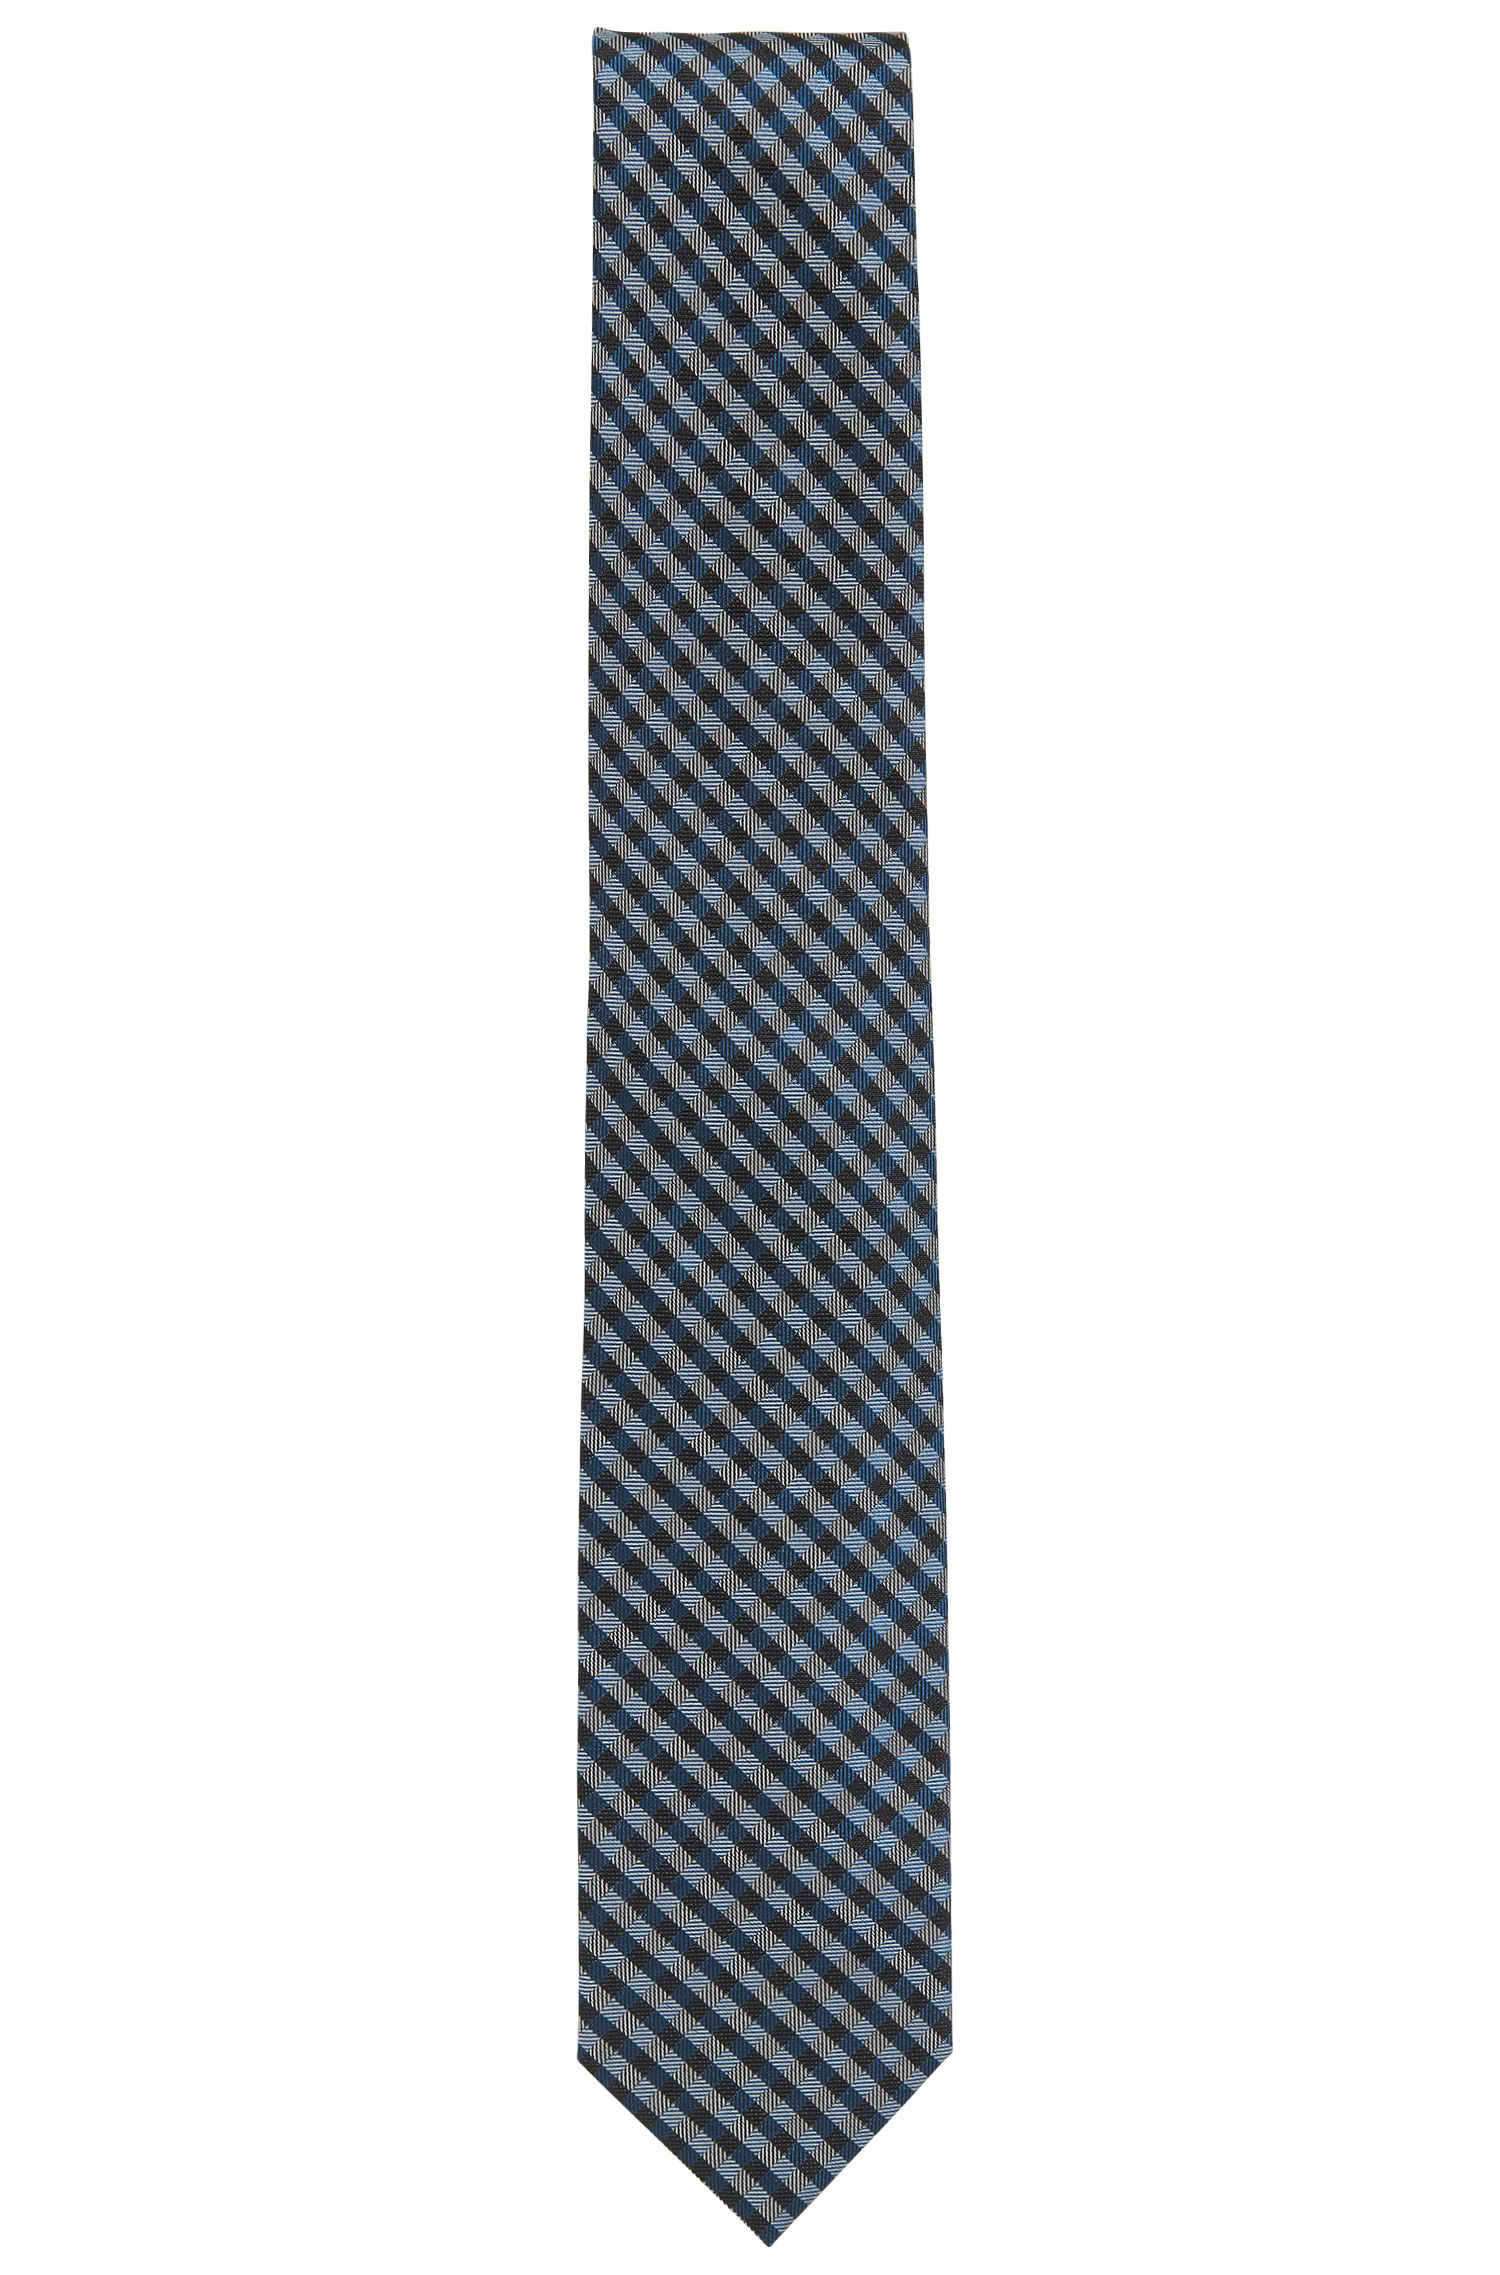 Vichy-check tie in silk jacquard